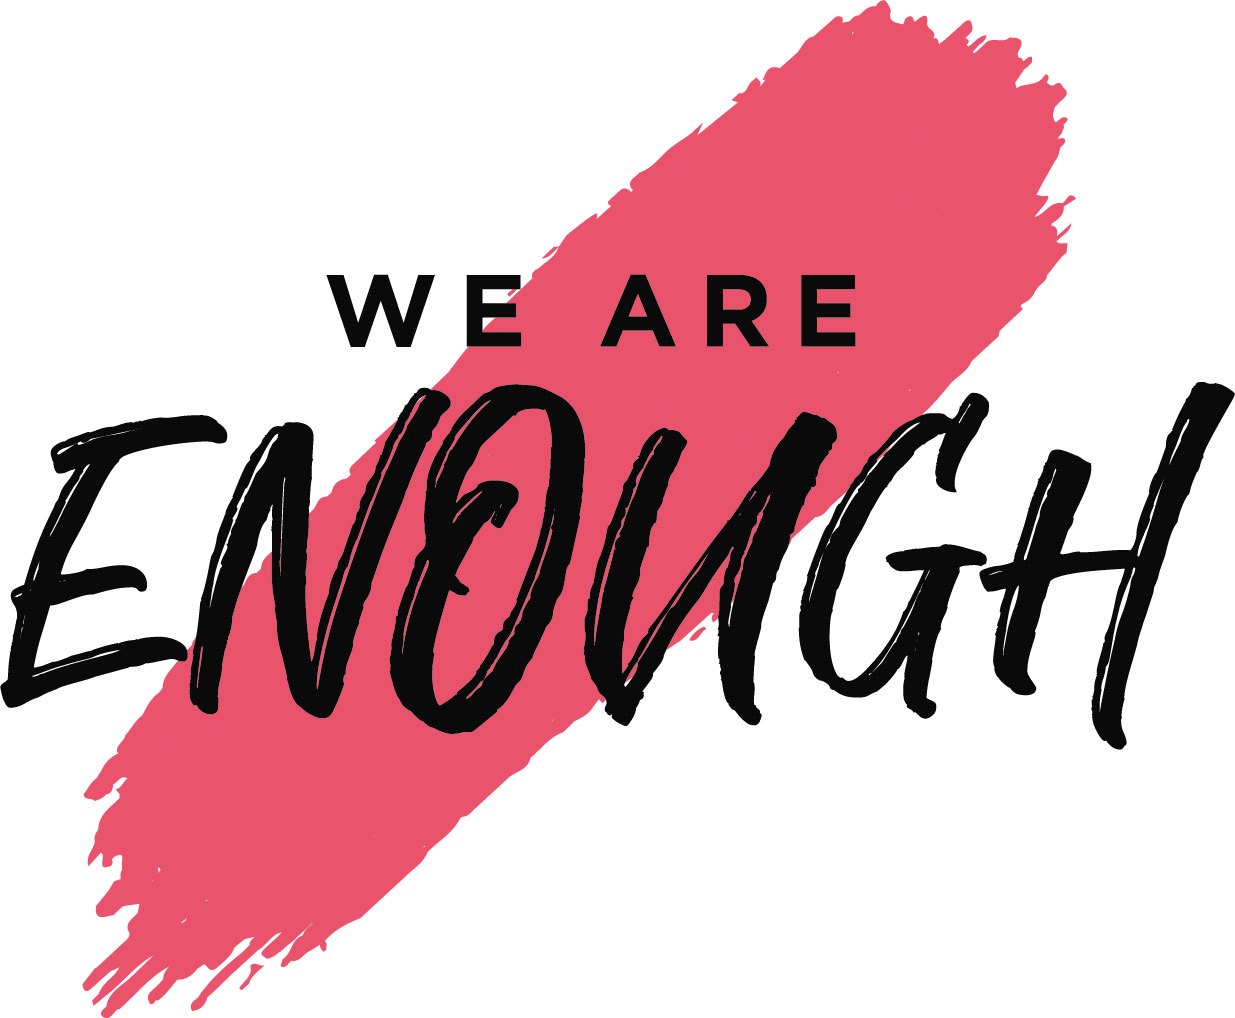 """About Us: - We.Are.Enough or WAE as we like to shorten it is a non-profit organization founded when a group of women came together through mutual friends and had a thought. They came together with one objective in mind, """"support each other"""". The phrase """"We.Are.Enough"""" formed from the realization that we can be ourselves, exactly who we are and that should be enough for us and others.This organization was founded to instill in others that they are worthy. Worthy of love from themselves, from others and from people whom they don't even know. With that thought in mind, we knew all women need a group to be a part of.We.Are.Enough is a women's group dedicated to the positive encouragement of women, their lives, their goals, and their dreams. We are here to be your biggest fans, catch you when you fall and pick you right back up again."""